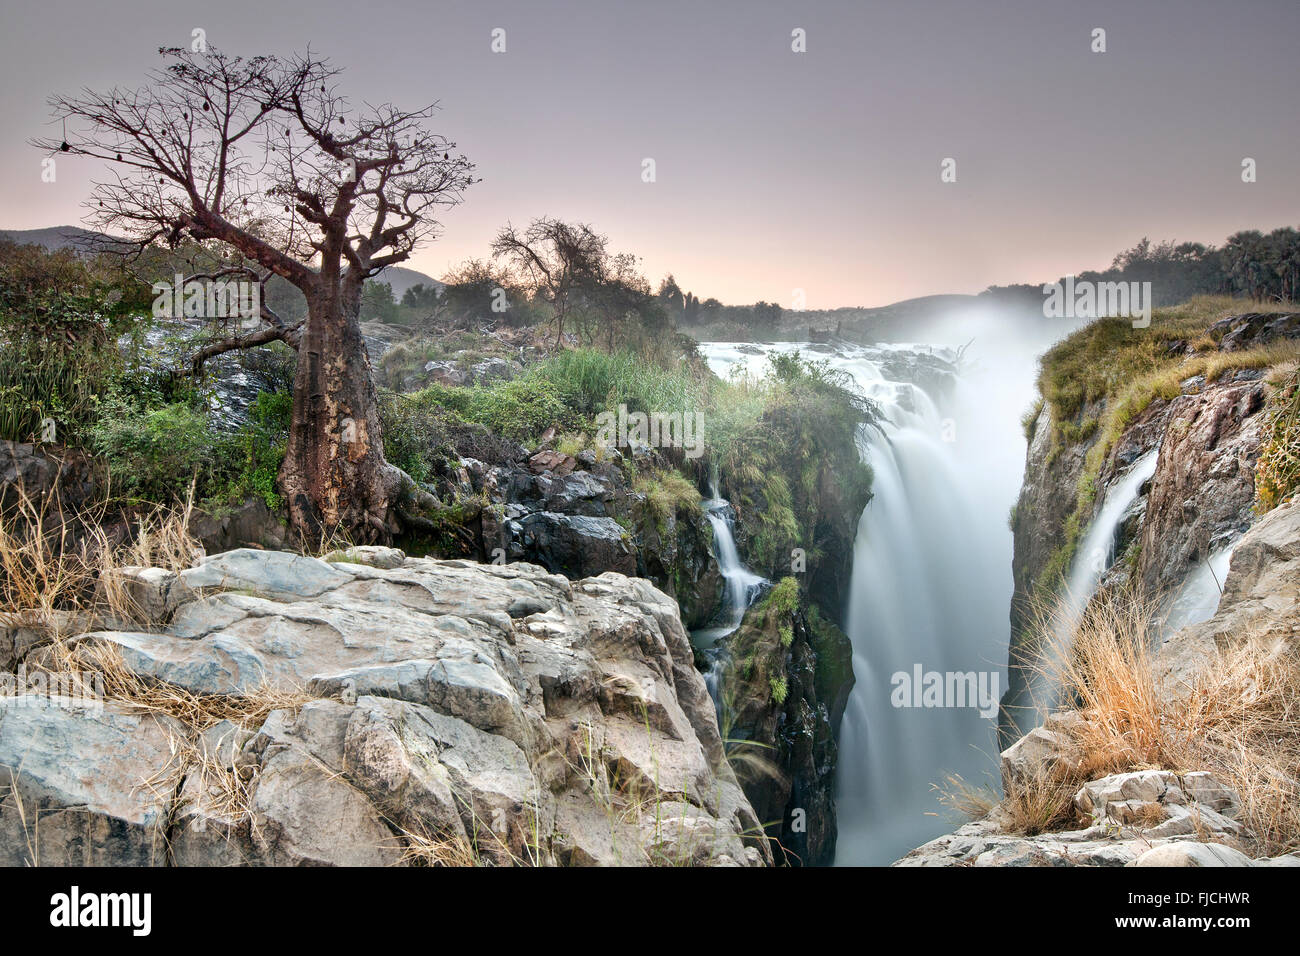 Epupa Falls In Namibia. - Stock Image